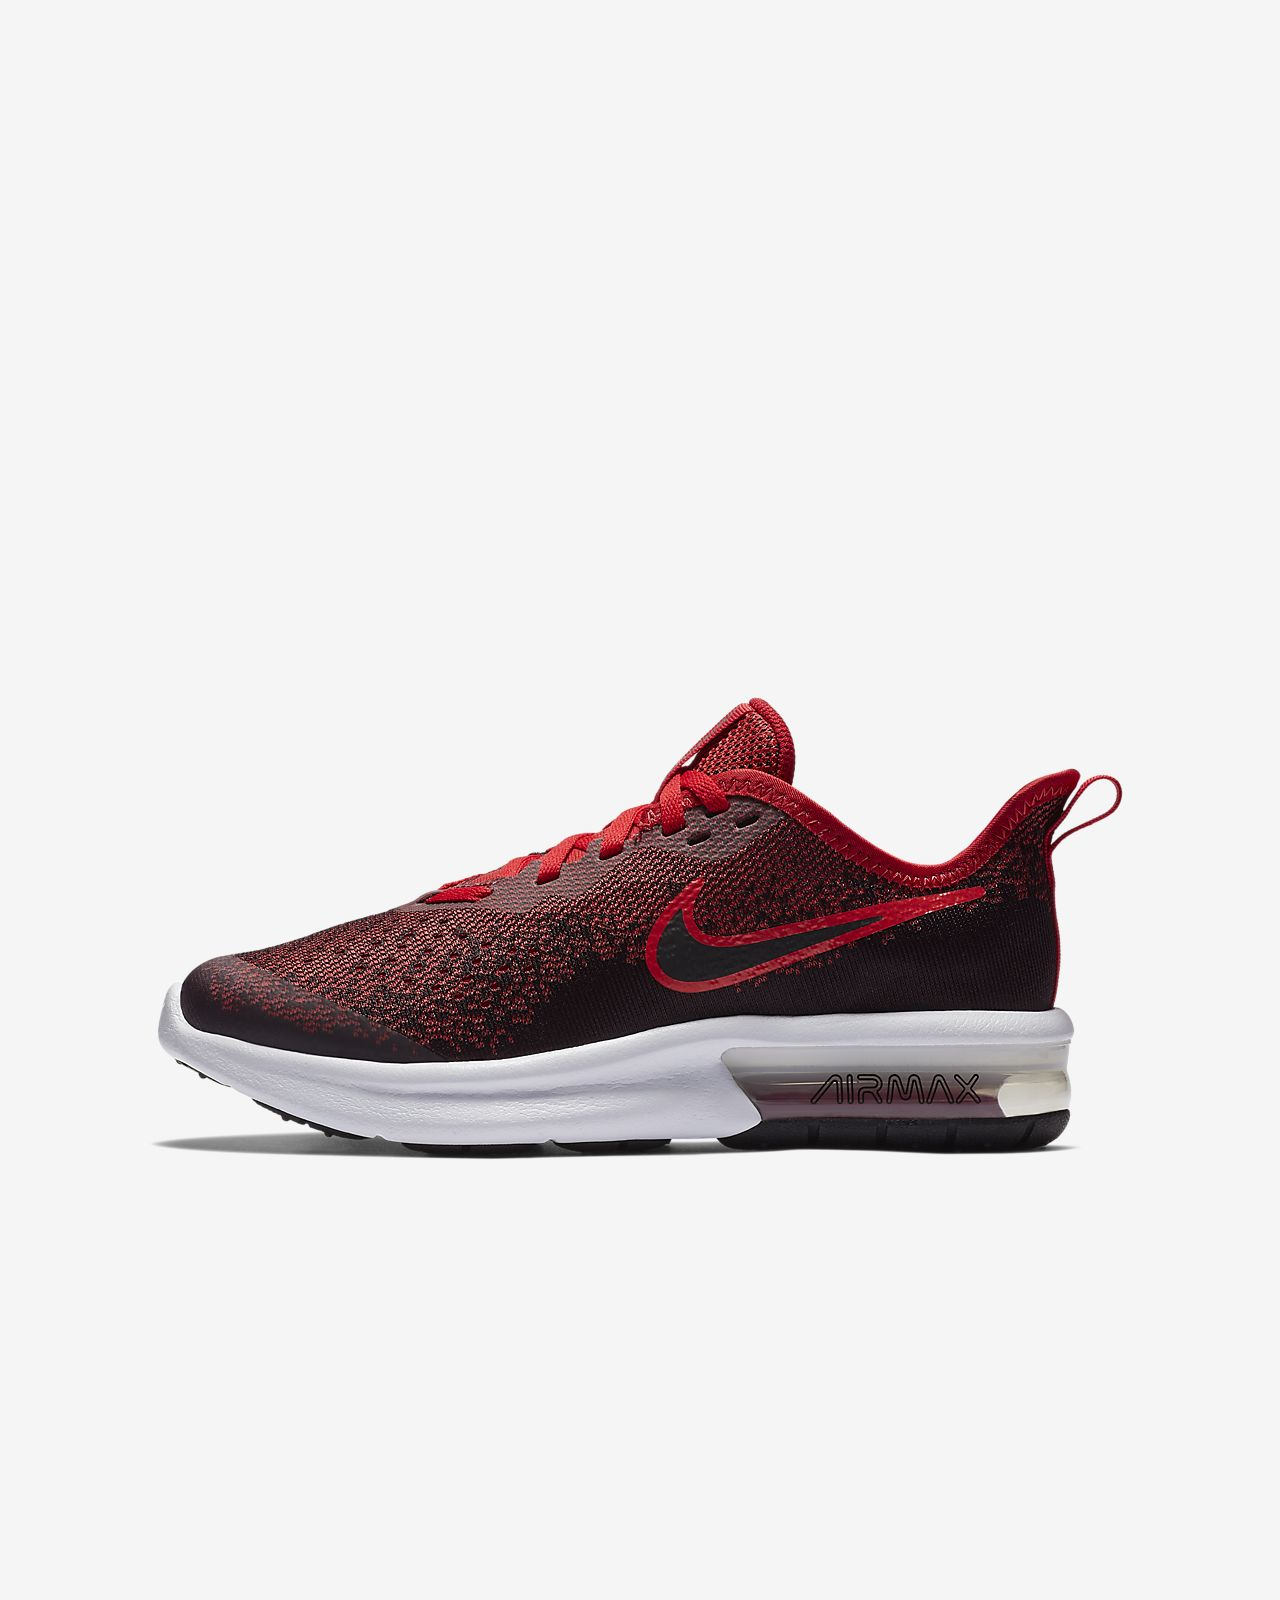 half off c2b93 63c8a ... Nike Air Max Sequent 4 Older Kids  Shoe